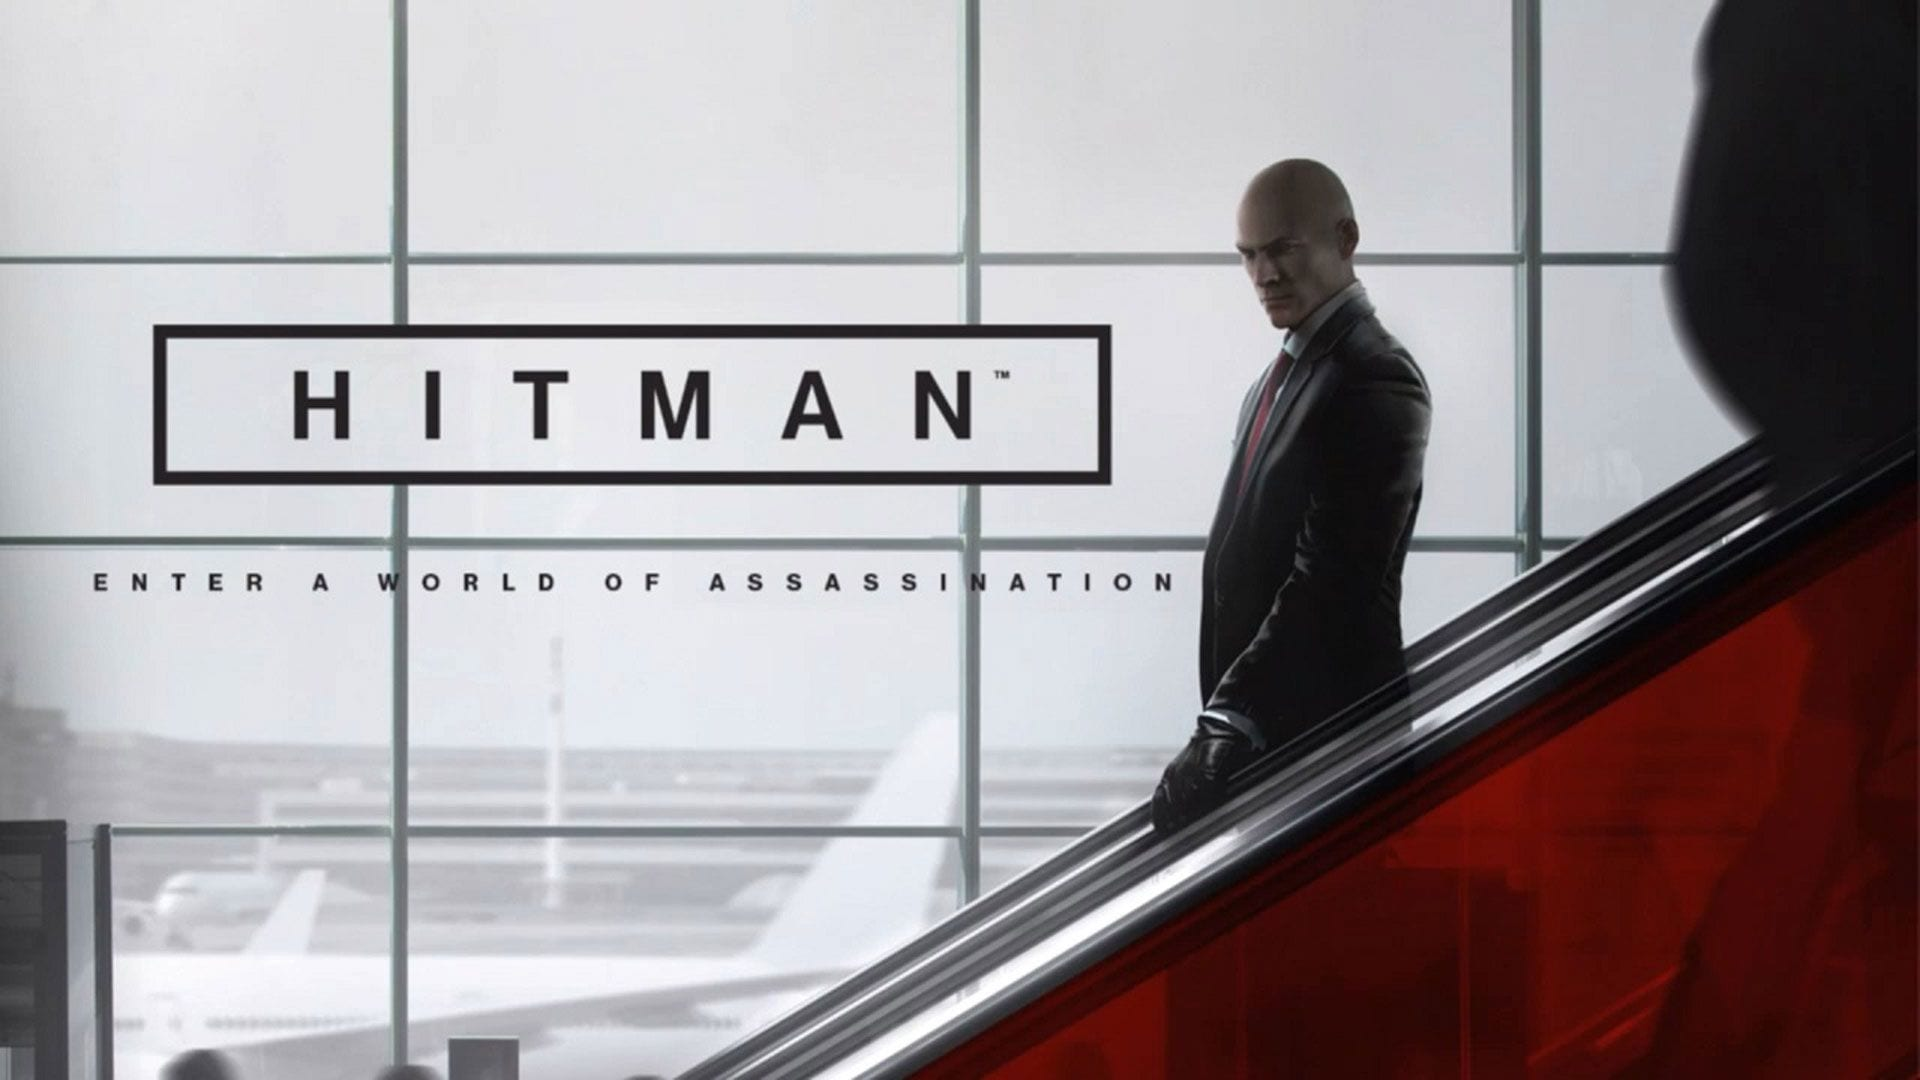 Hitman 2016 background